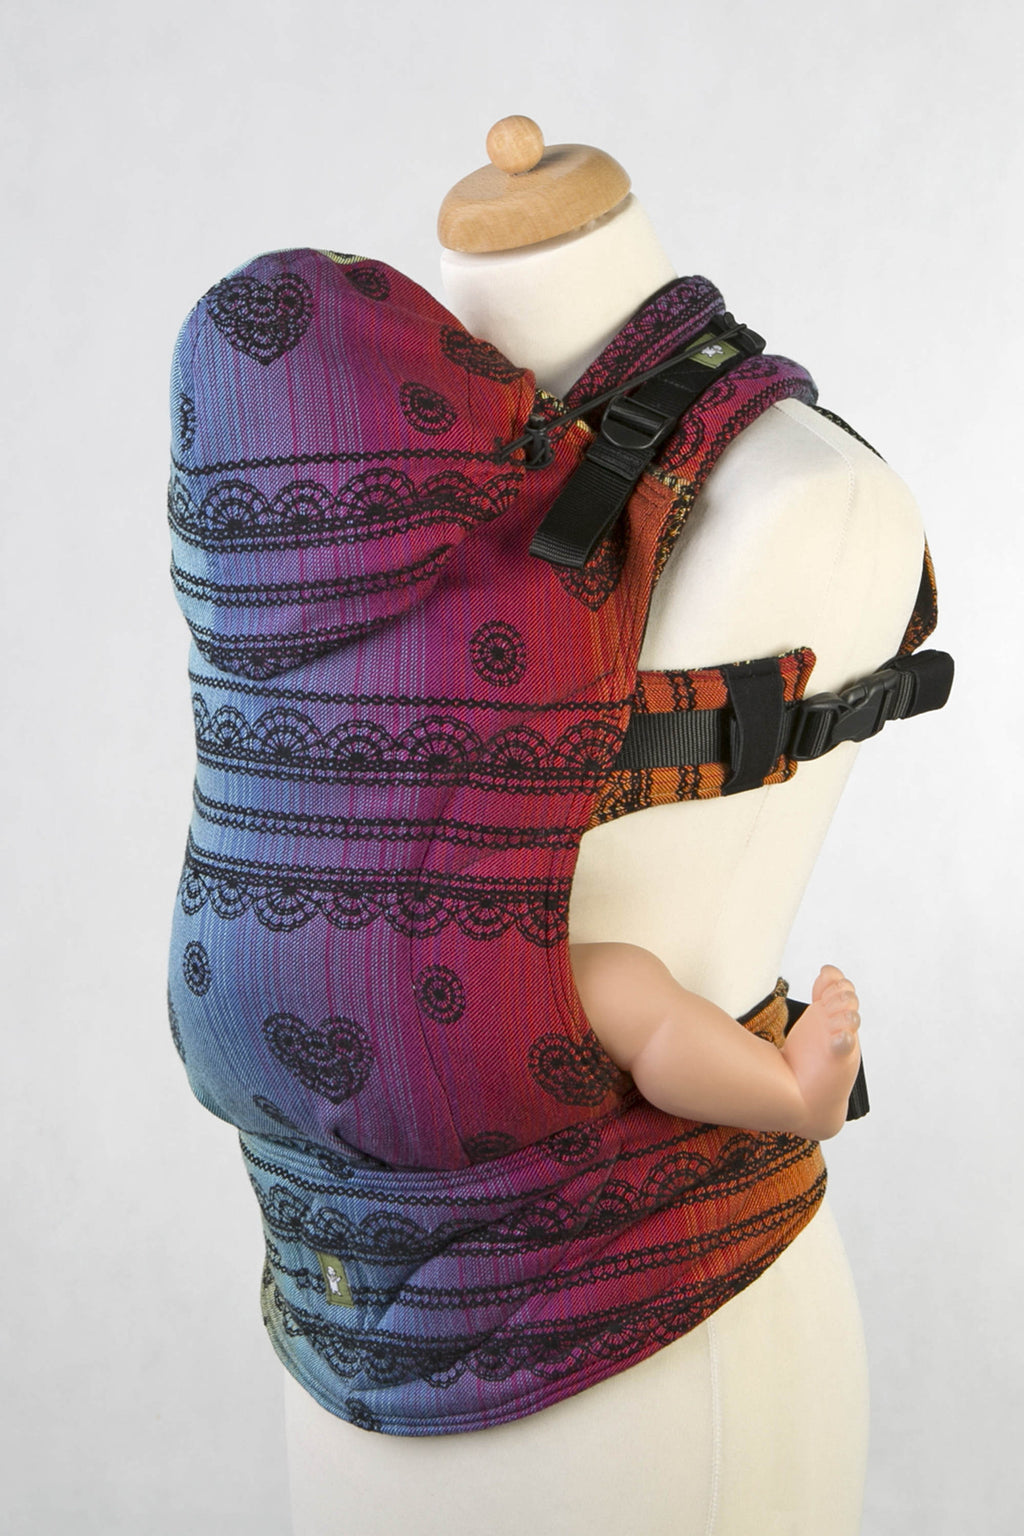 Lenny Lamb Ergonomic Carrier - Rainbow Lace Dark - Slings and Things